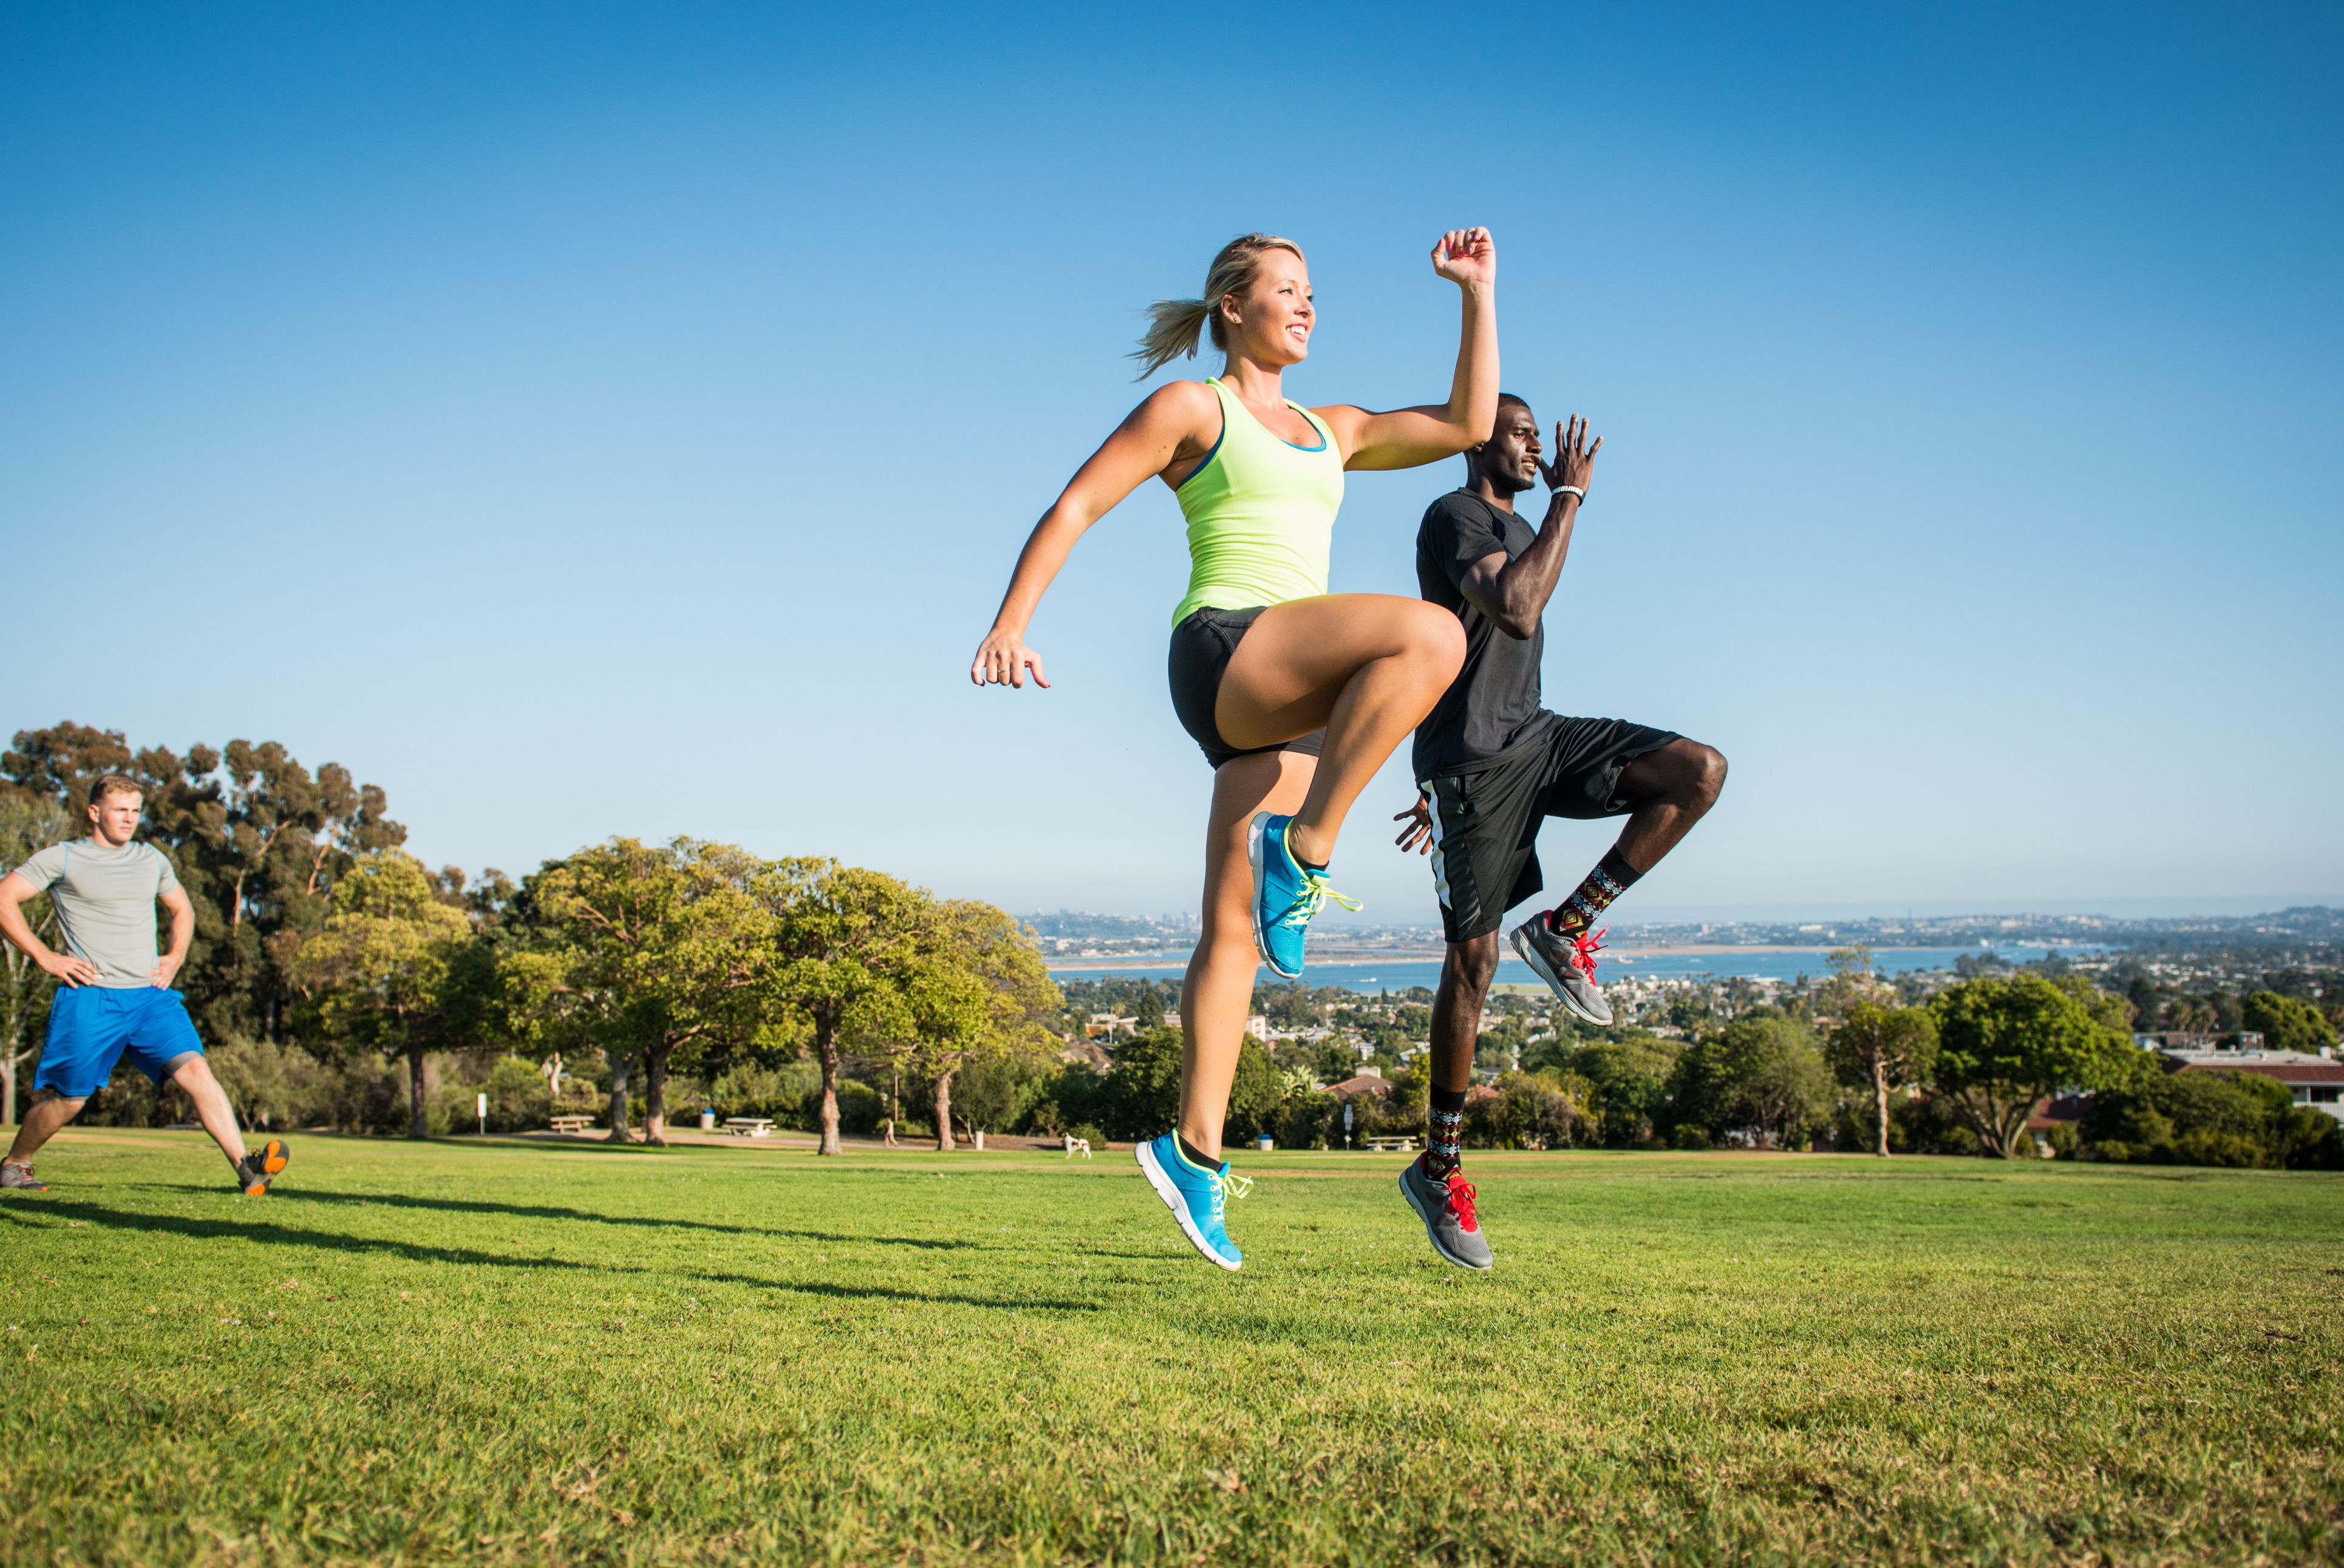 man and woman jumping during workout